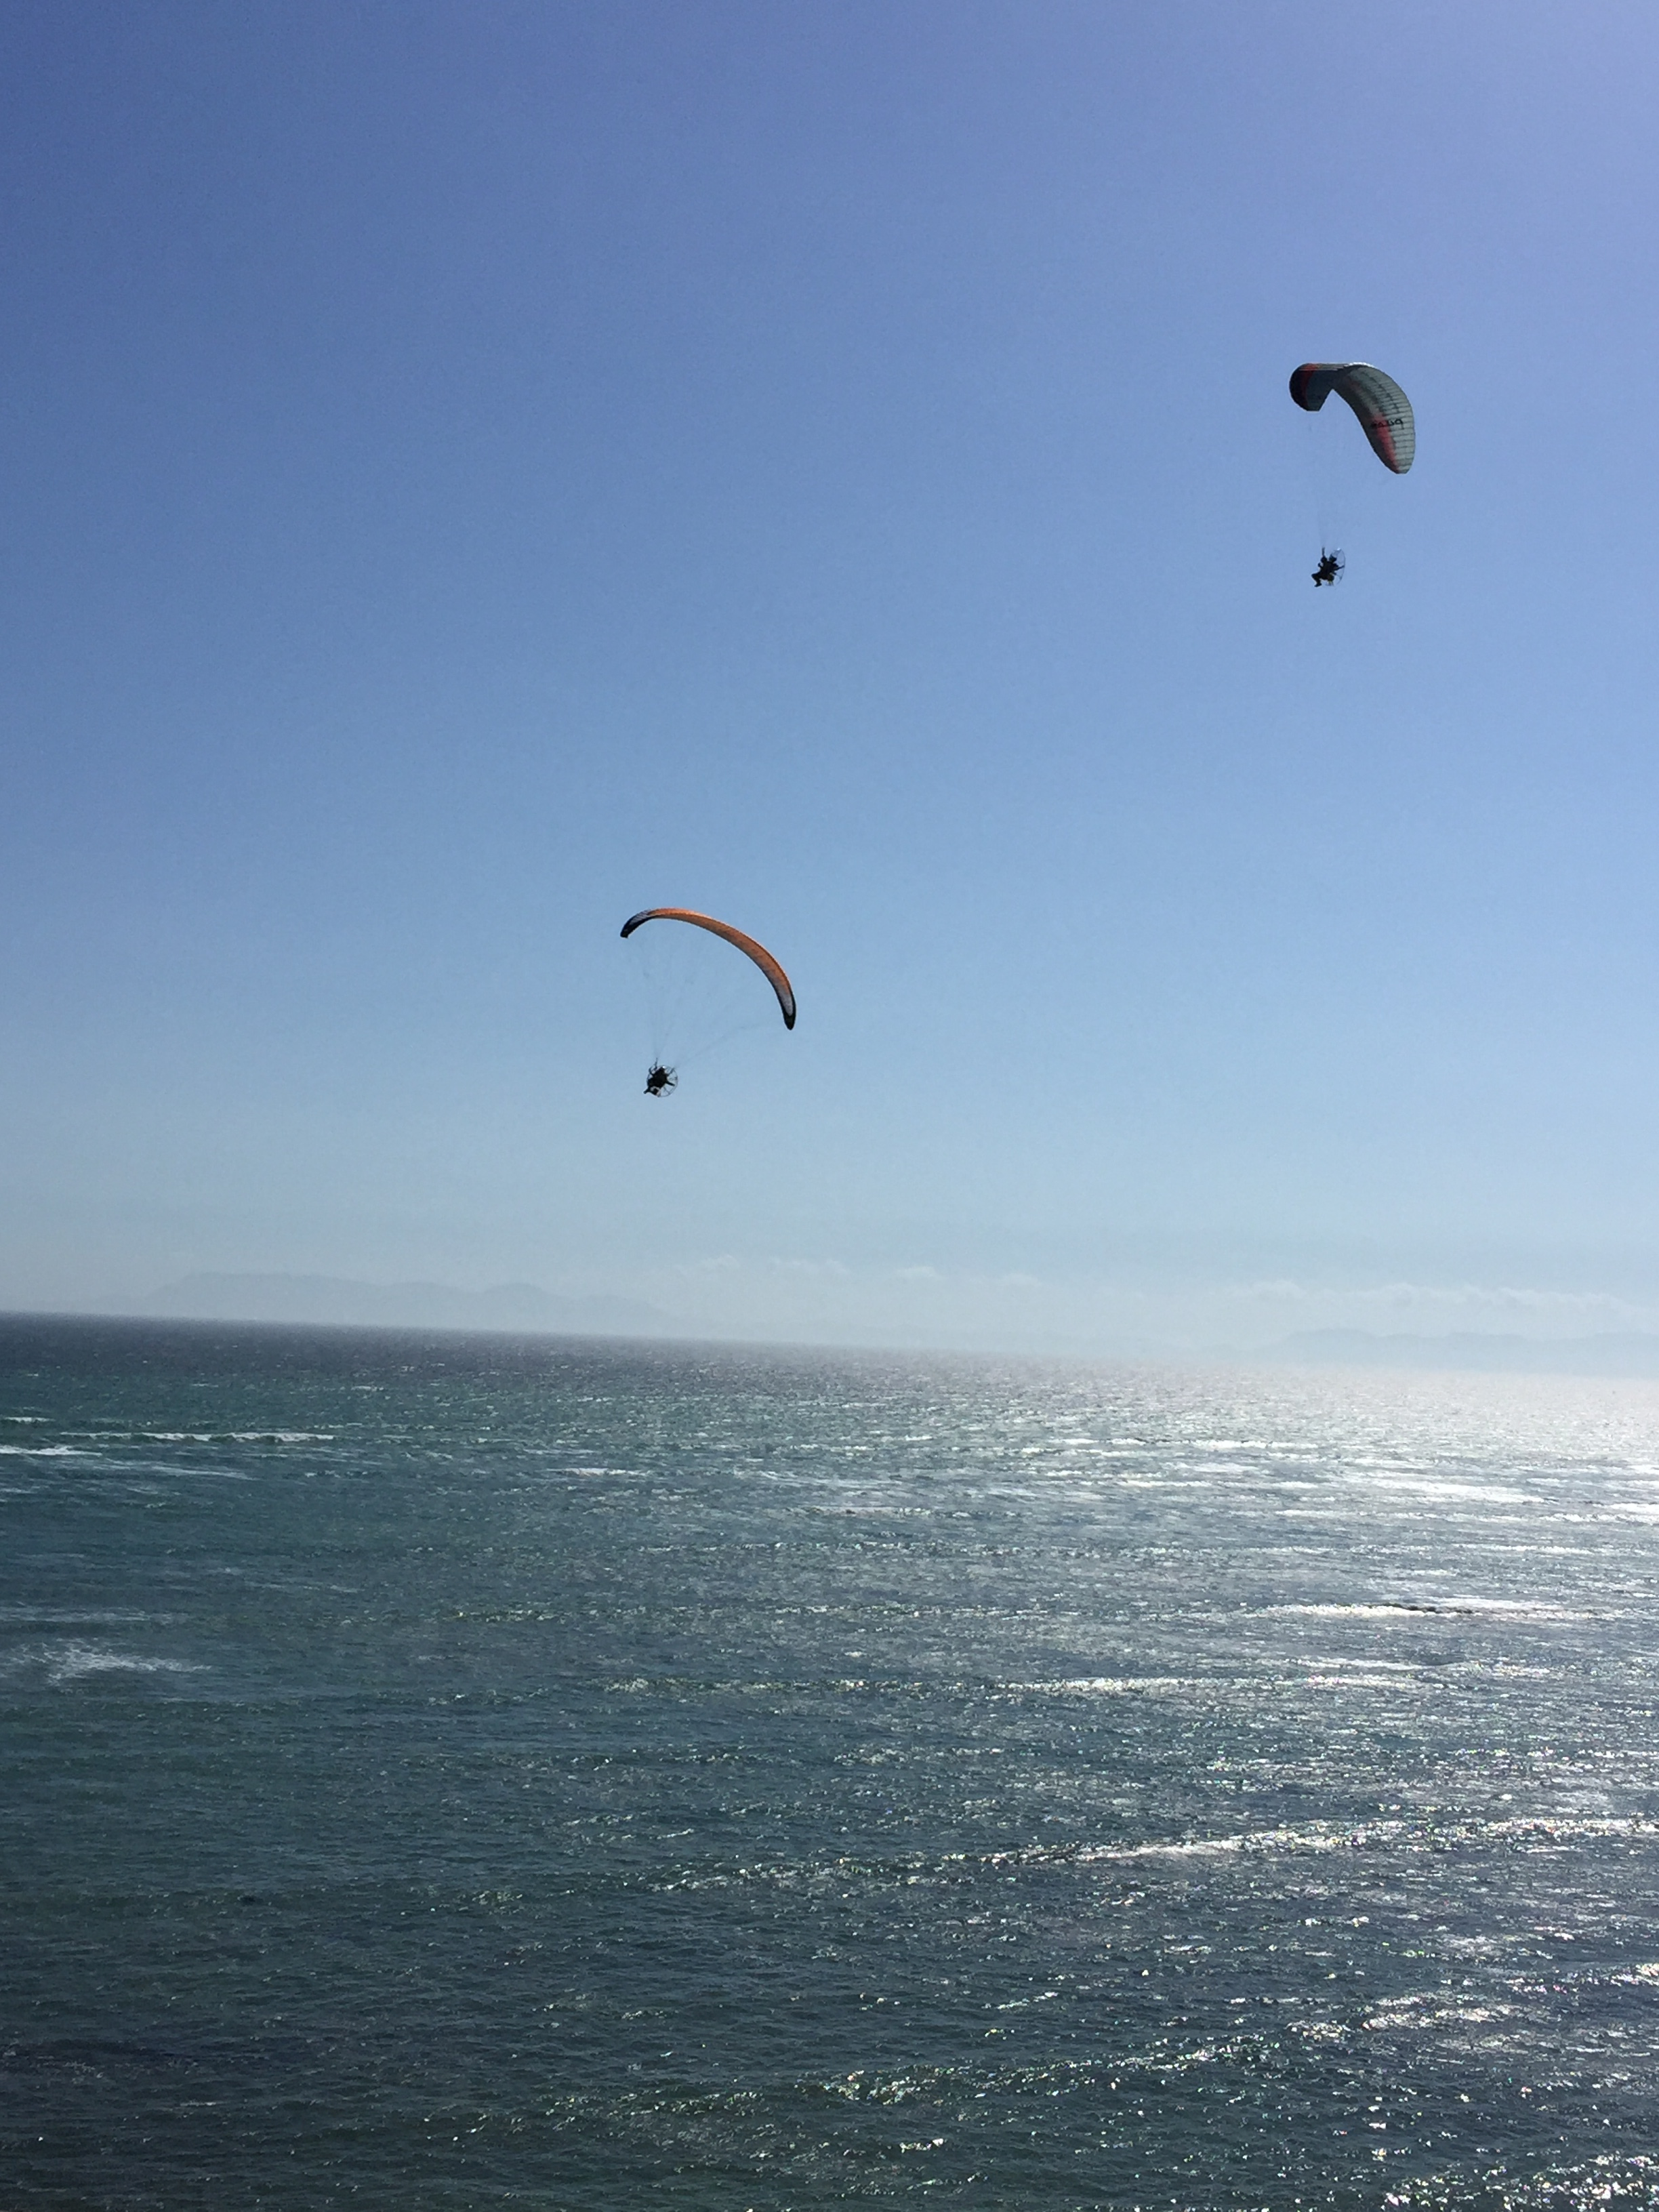 Two paragliders that flew past our flat.